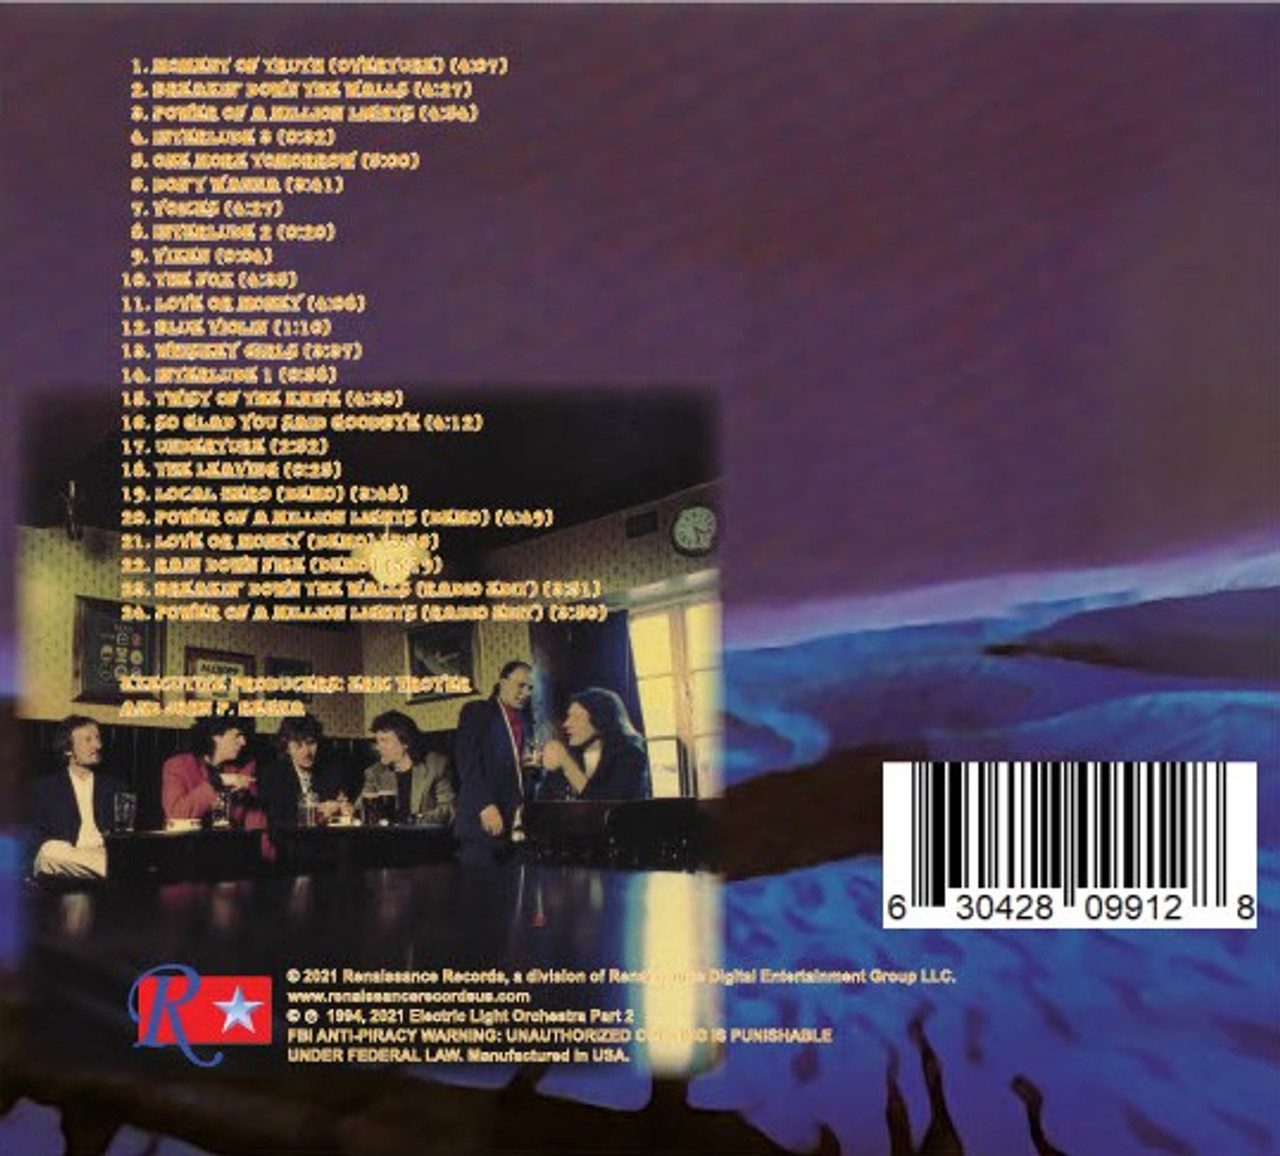 Moment of Truth by Electric Light Orchestra Part II available on CD with bonus tracks